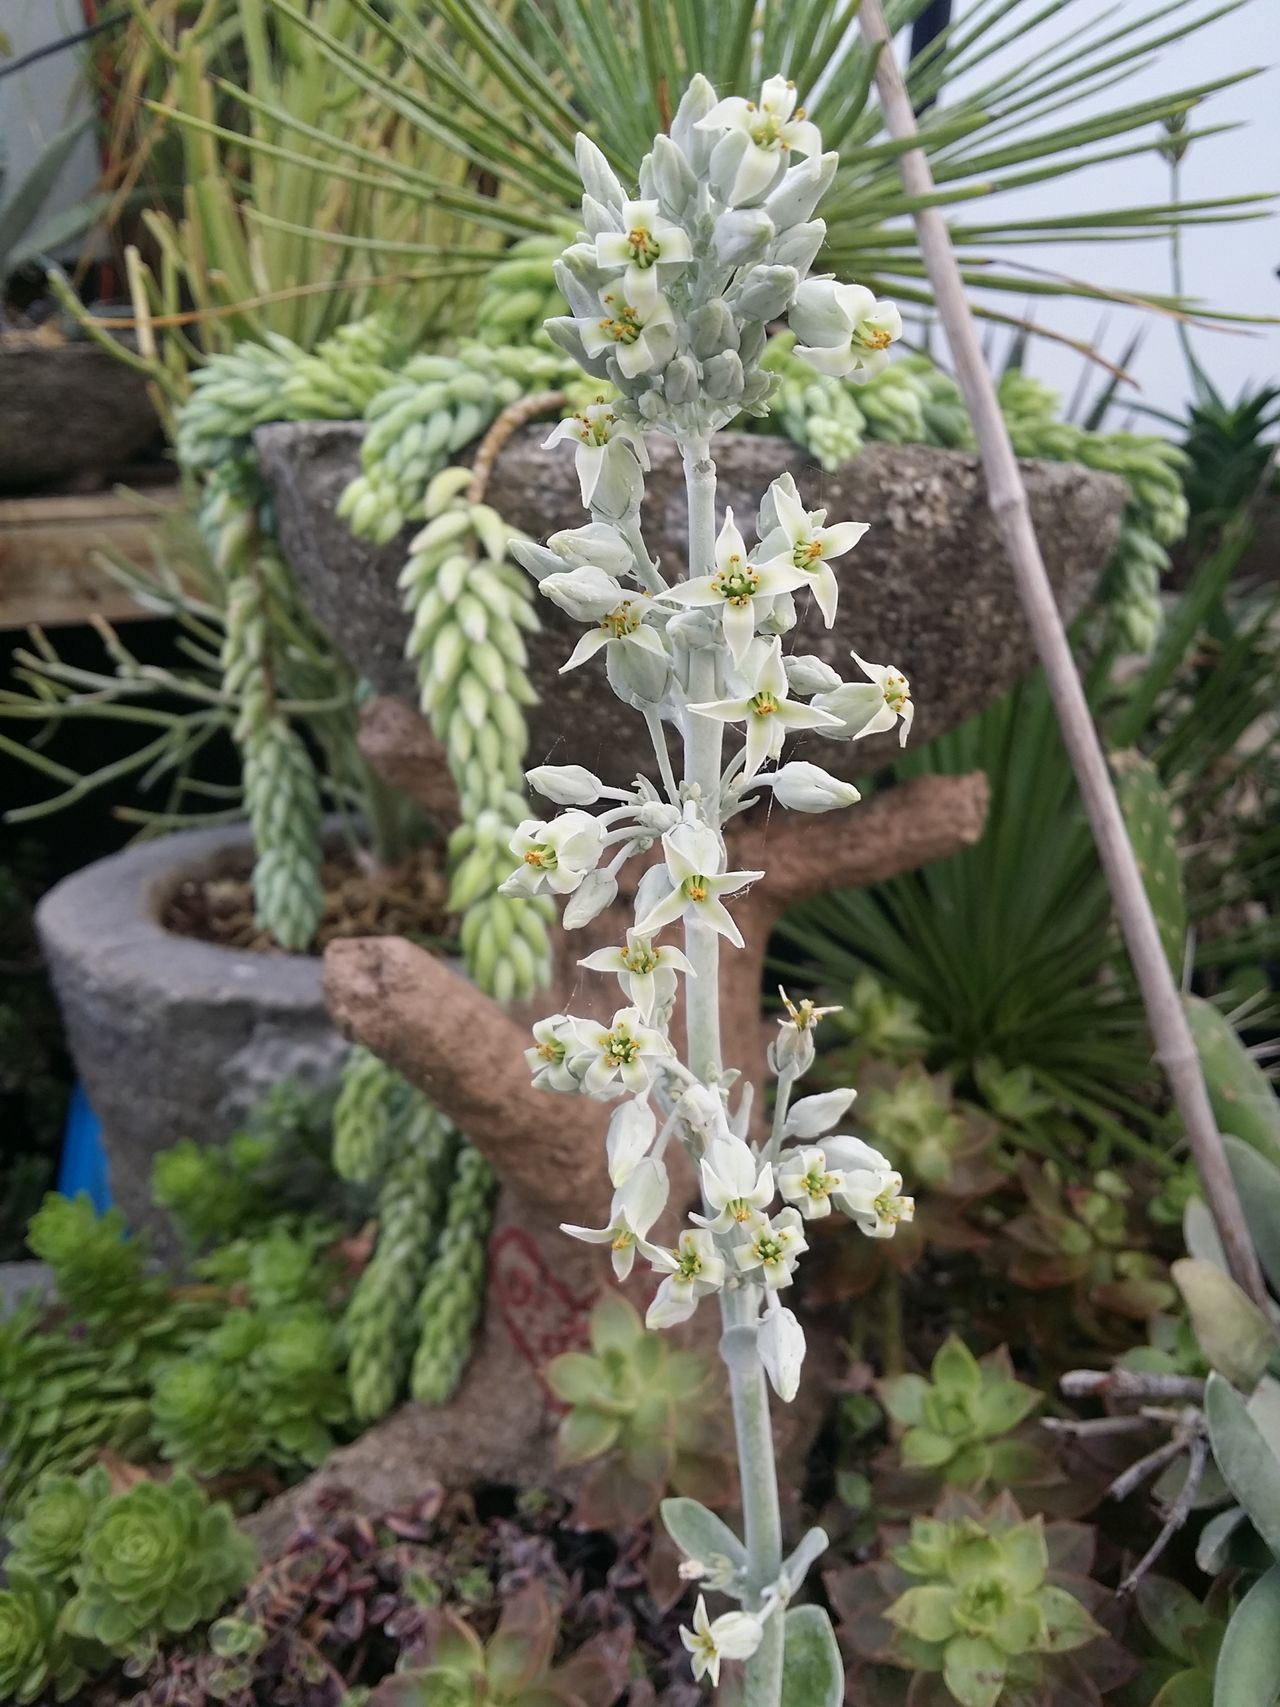 Winter Greenhouse Tranquility Hill Farm Clifton Springs Ny Lotus Temple Kalanchoe Flapjack Flower.